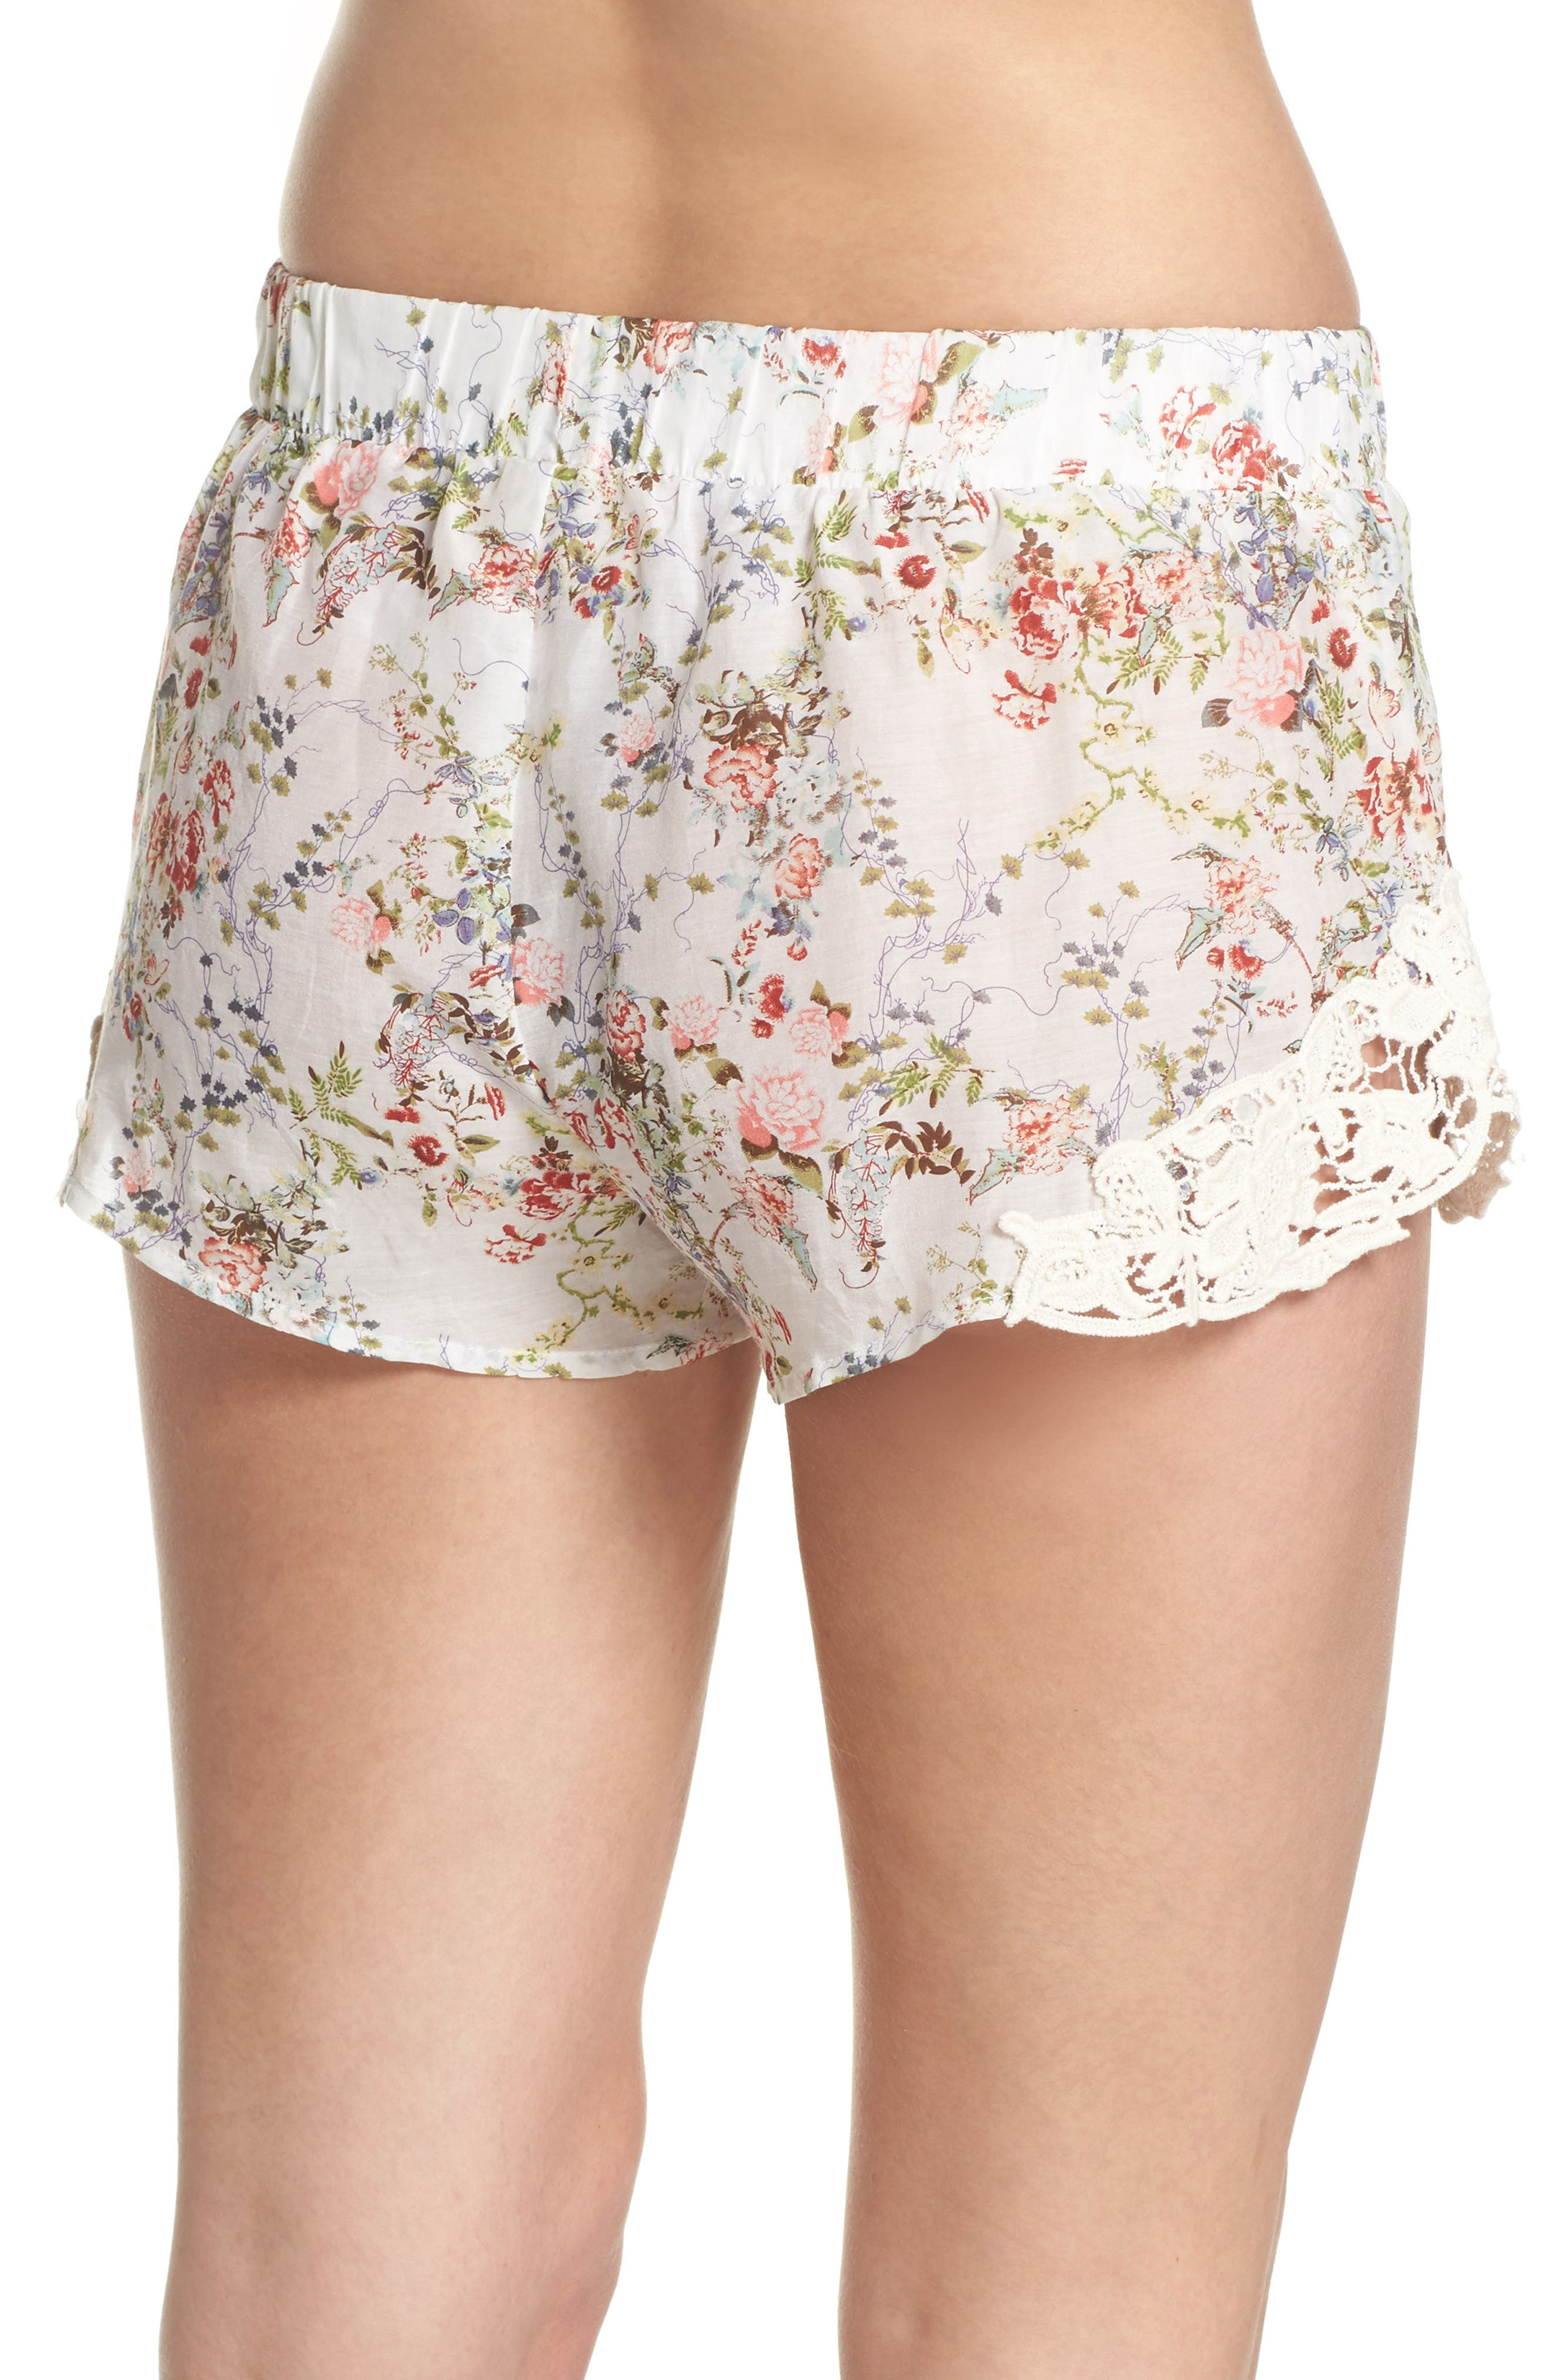 Yolly Floral Pajama Shorts,                             Alternate thumbnail 2, color,                             Ivory Floral